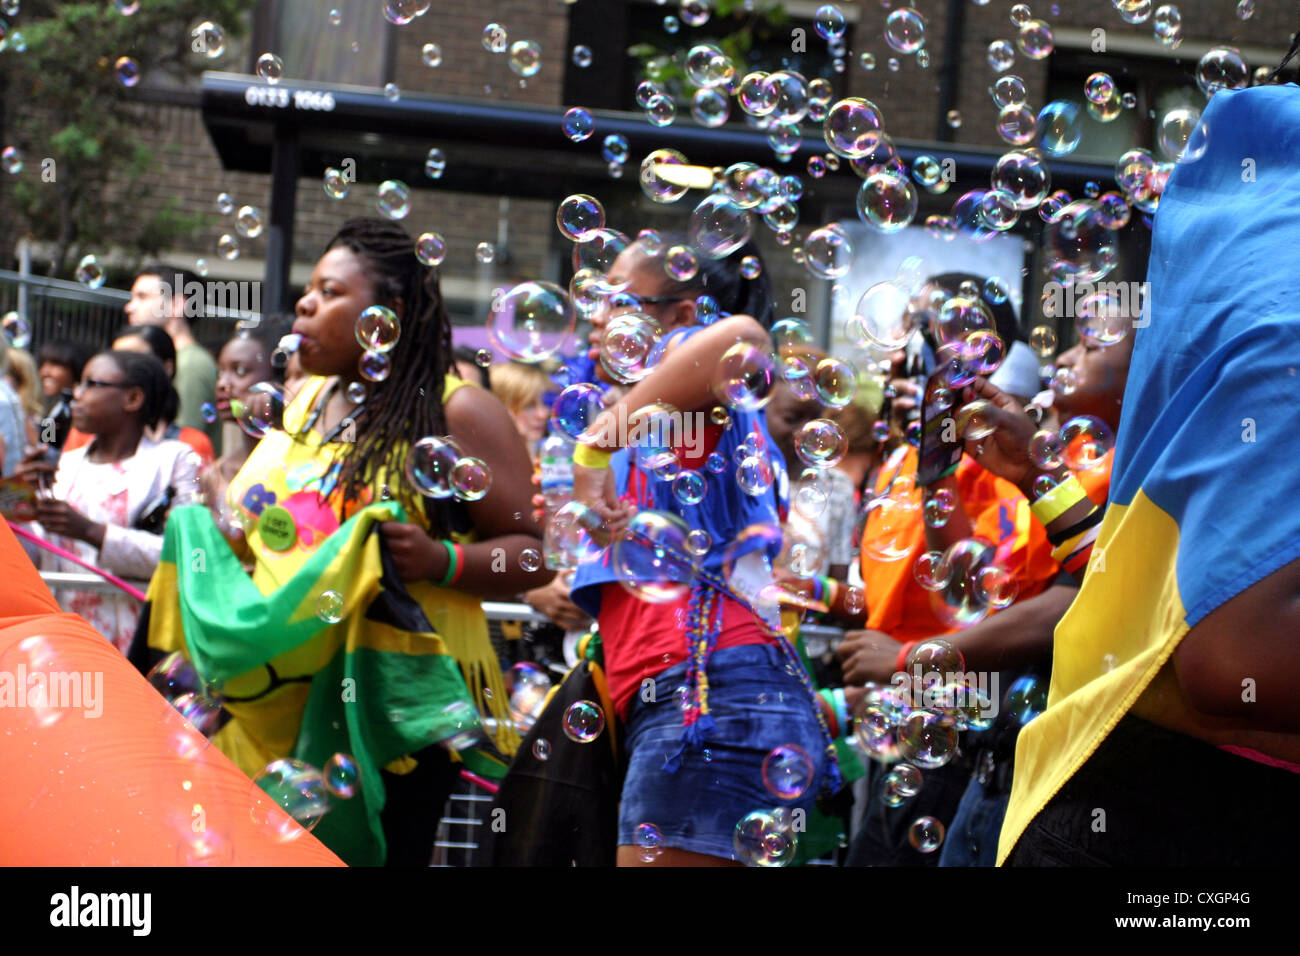 Bubbles floating in the air at Notting Hill annual Carnival London - Stock Image